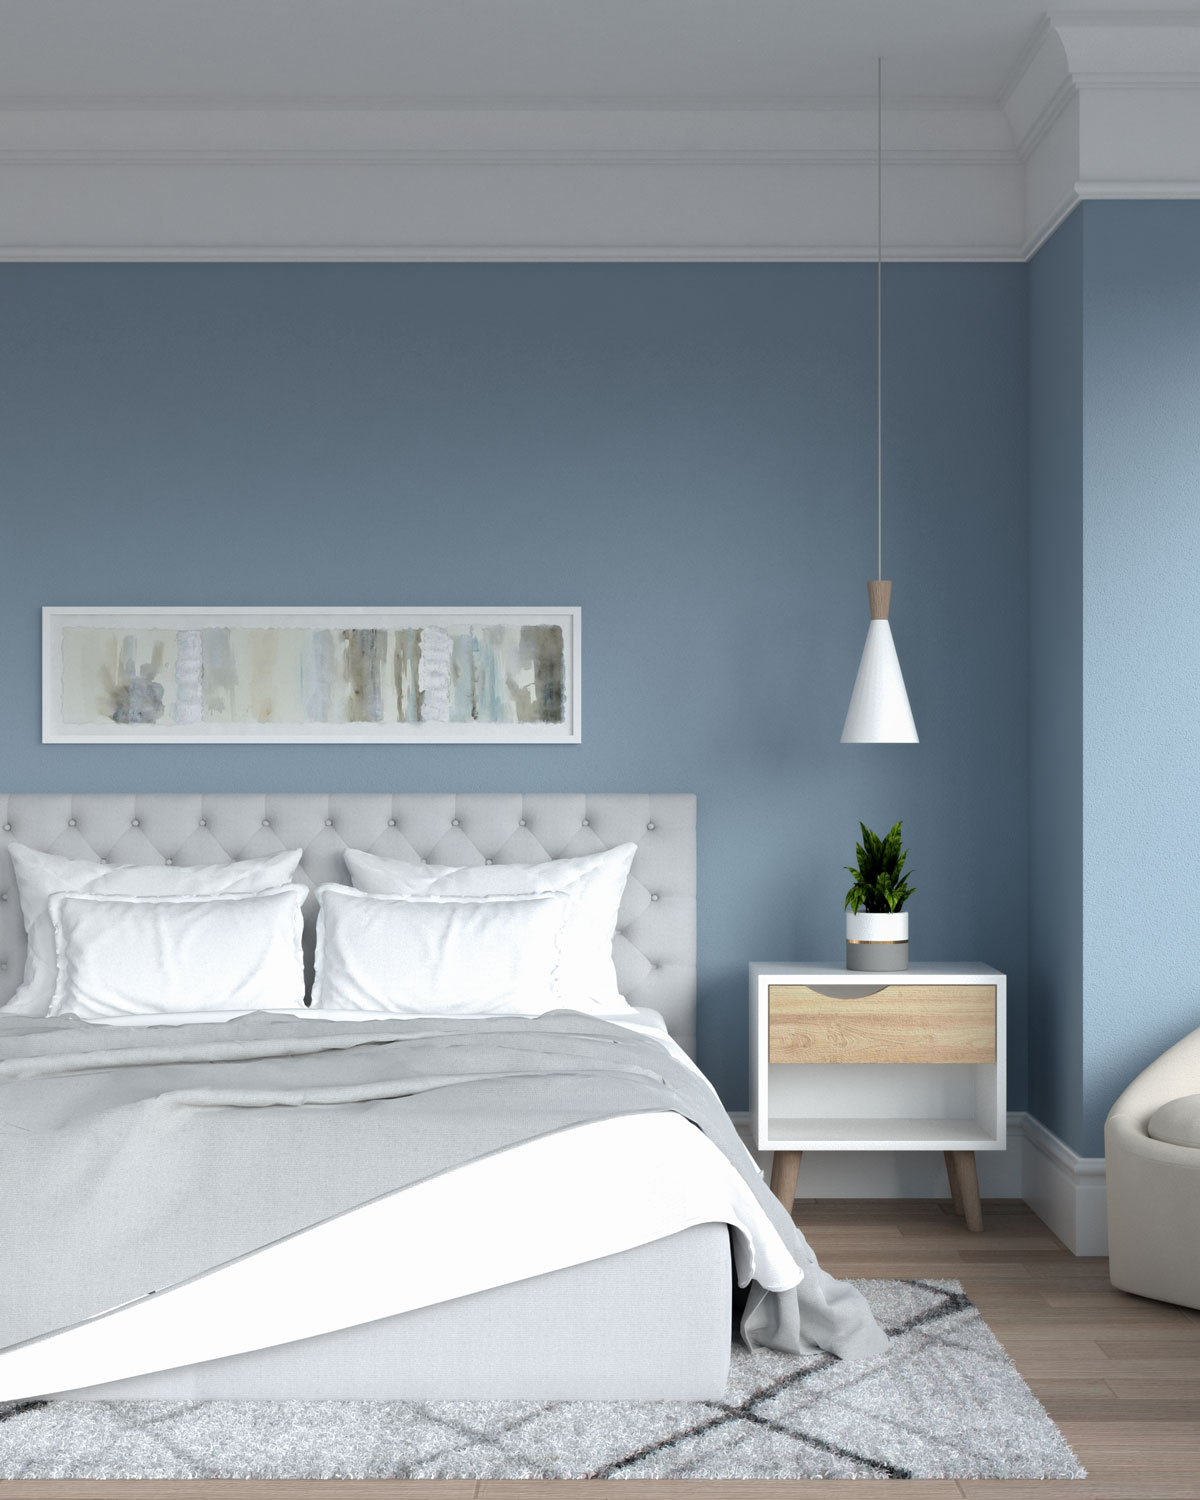 White and gray bedding in blue bedroom